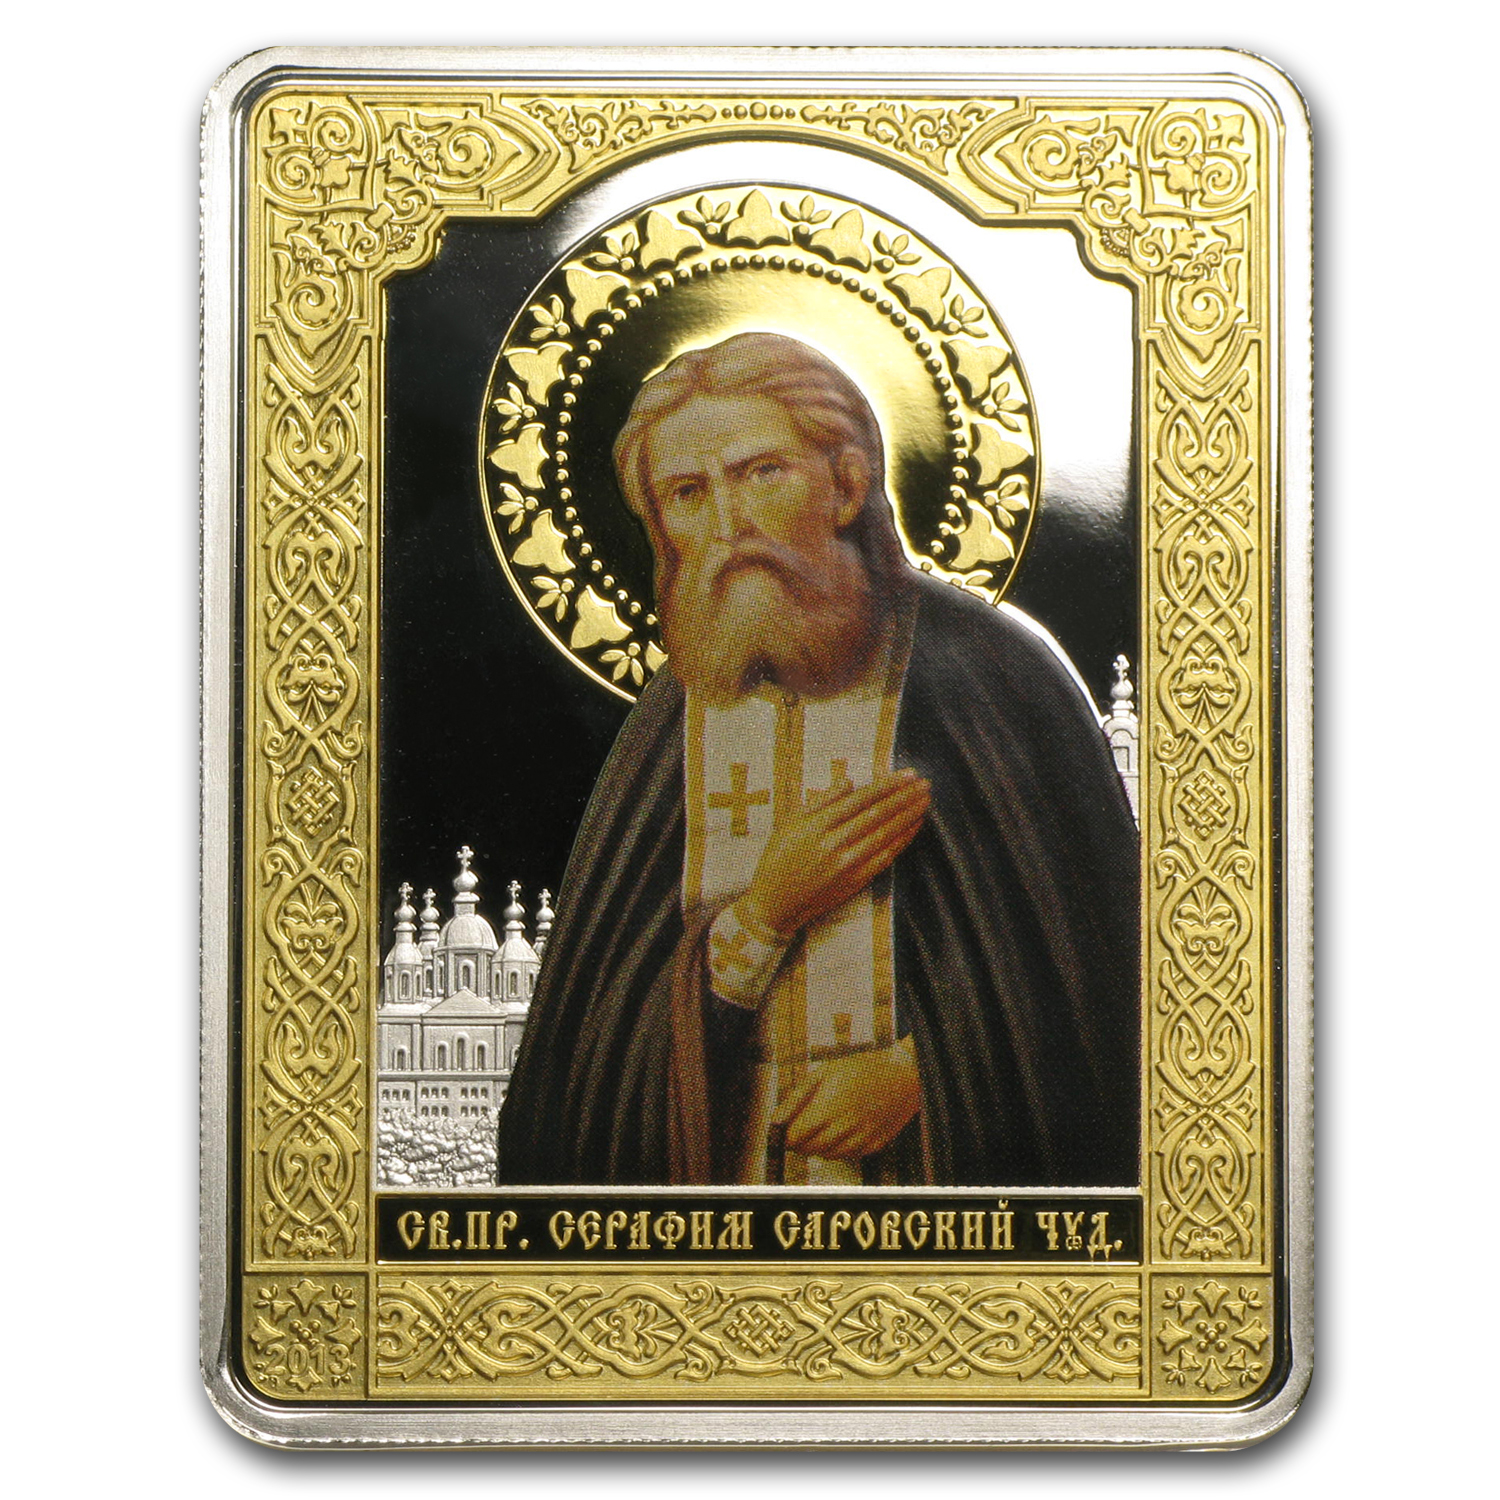 2013 Cook Islands $5 Russian Icon Saint Seraphim of Sarovsky